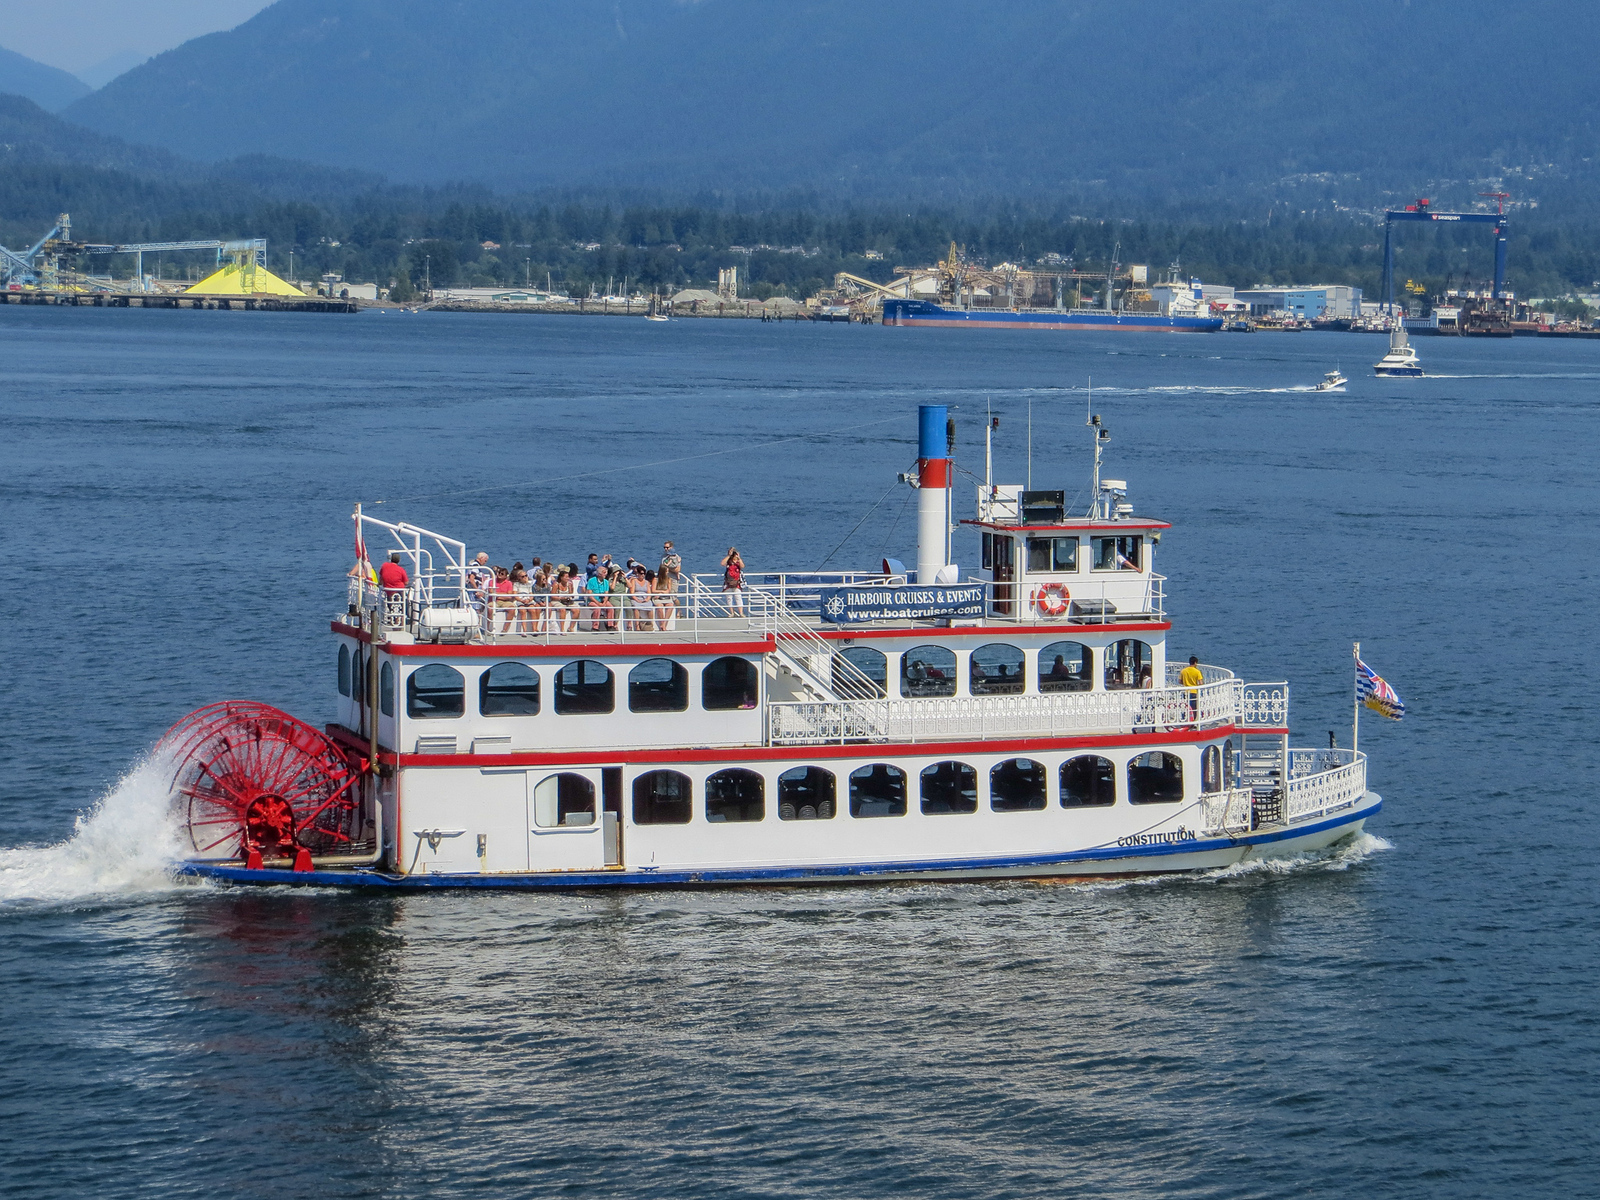 solo vancouver? go on a cool boat ride